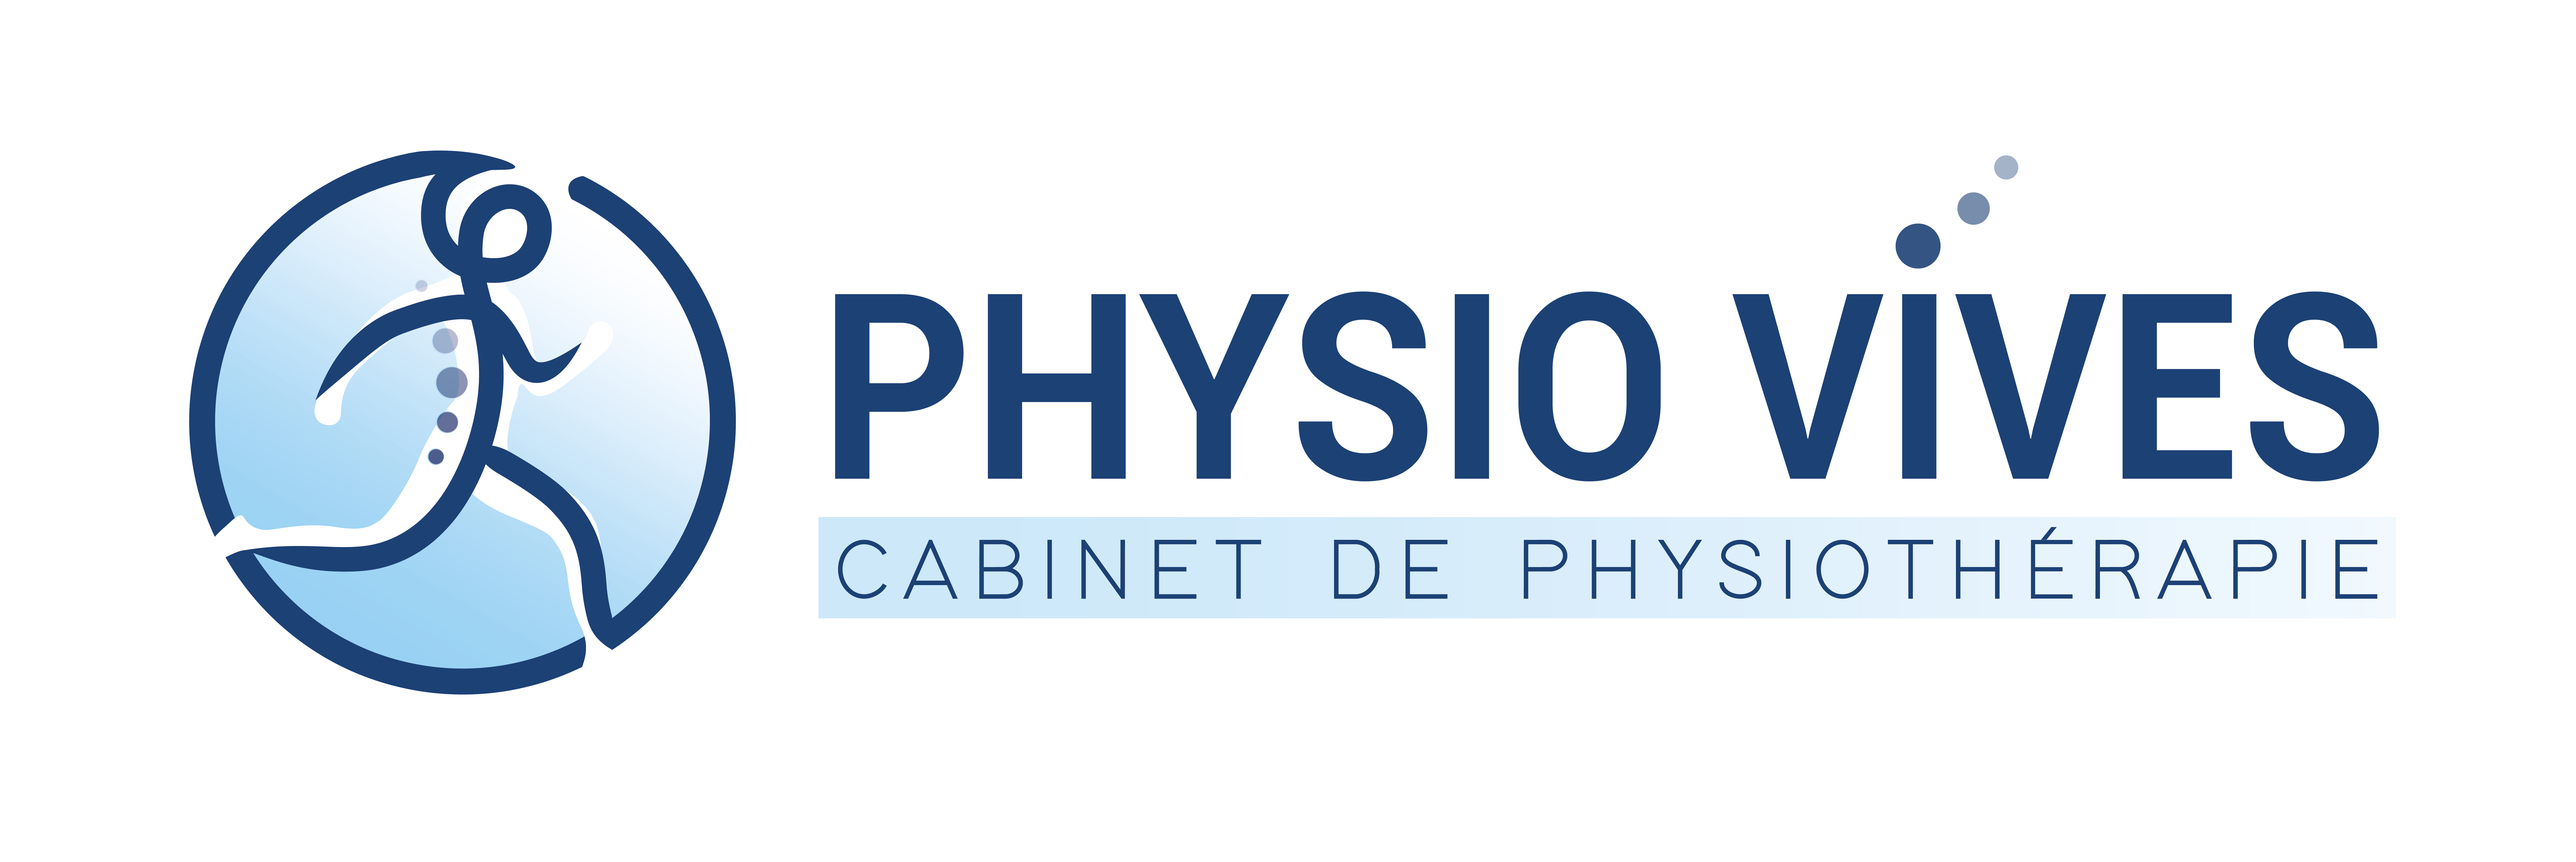 Physio-Vives